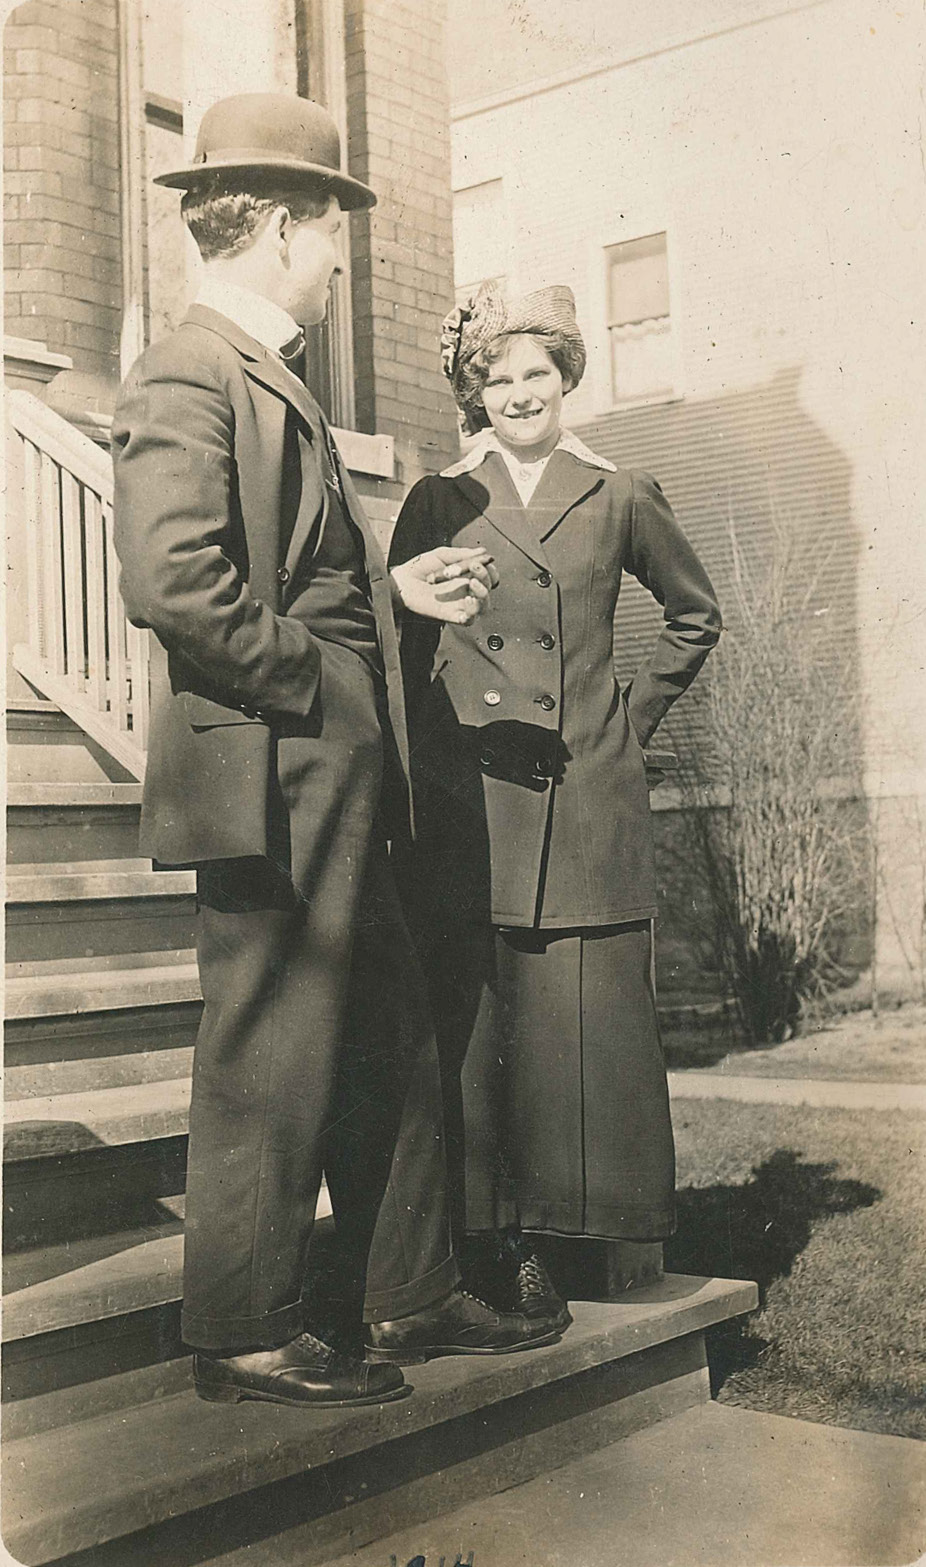 Carl and Hilda in Chicago in 1914